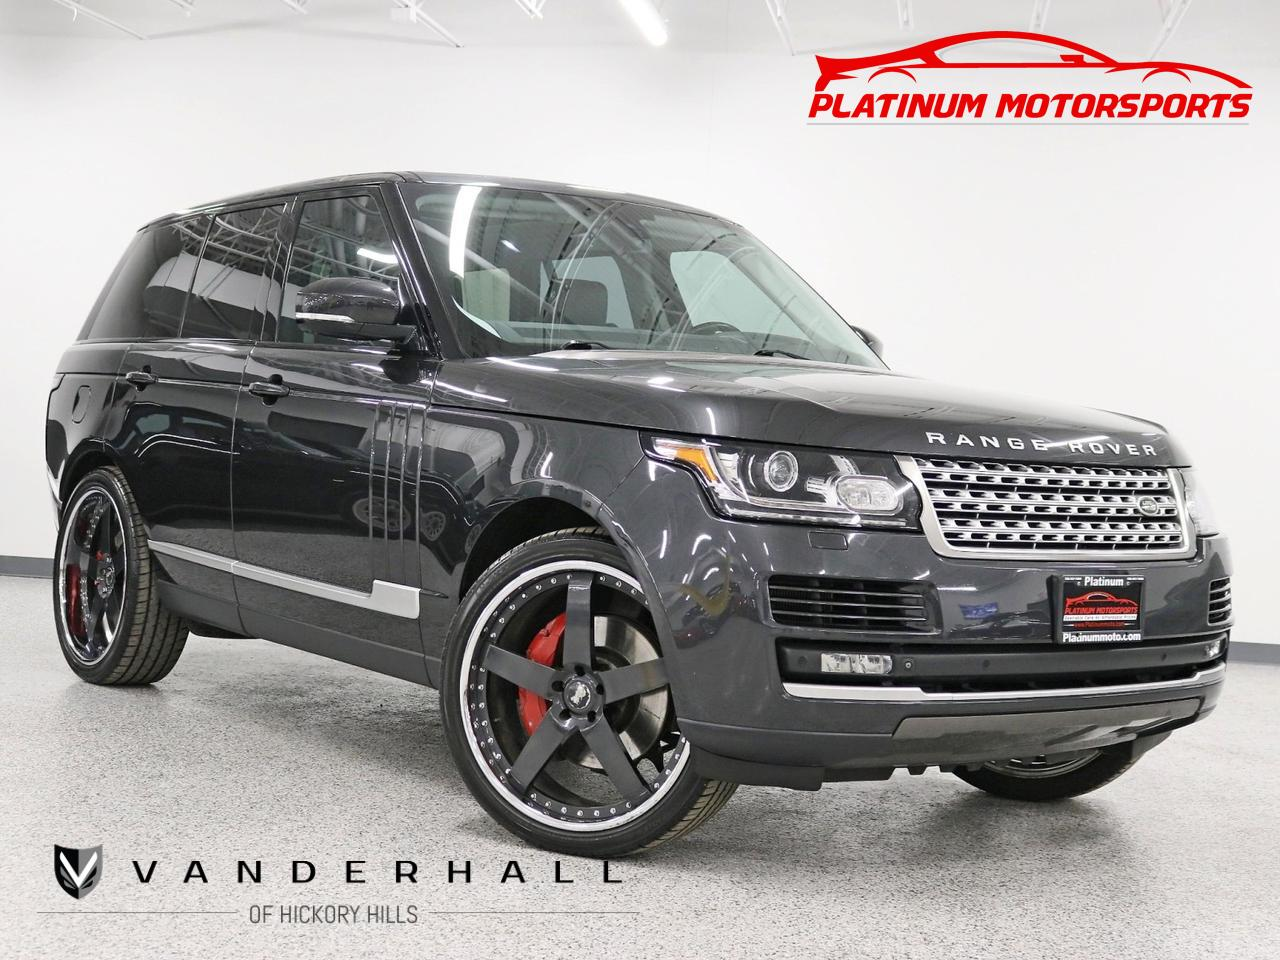 2014 Land Rover Range Rover SC 2 Owner Pano Wood 24 Color Painted Rims Vision Assist Pkg Soft Close Doors Loaded Hickory Hills IL